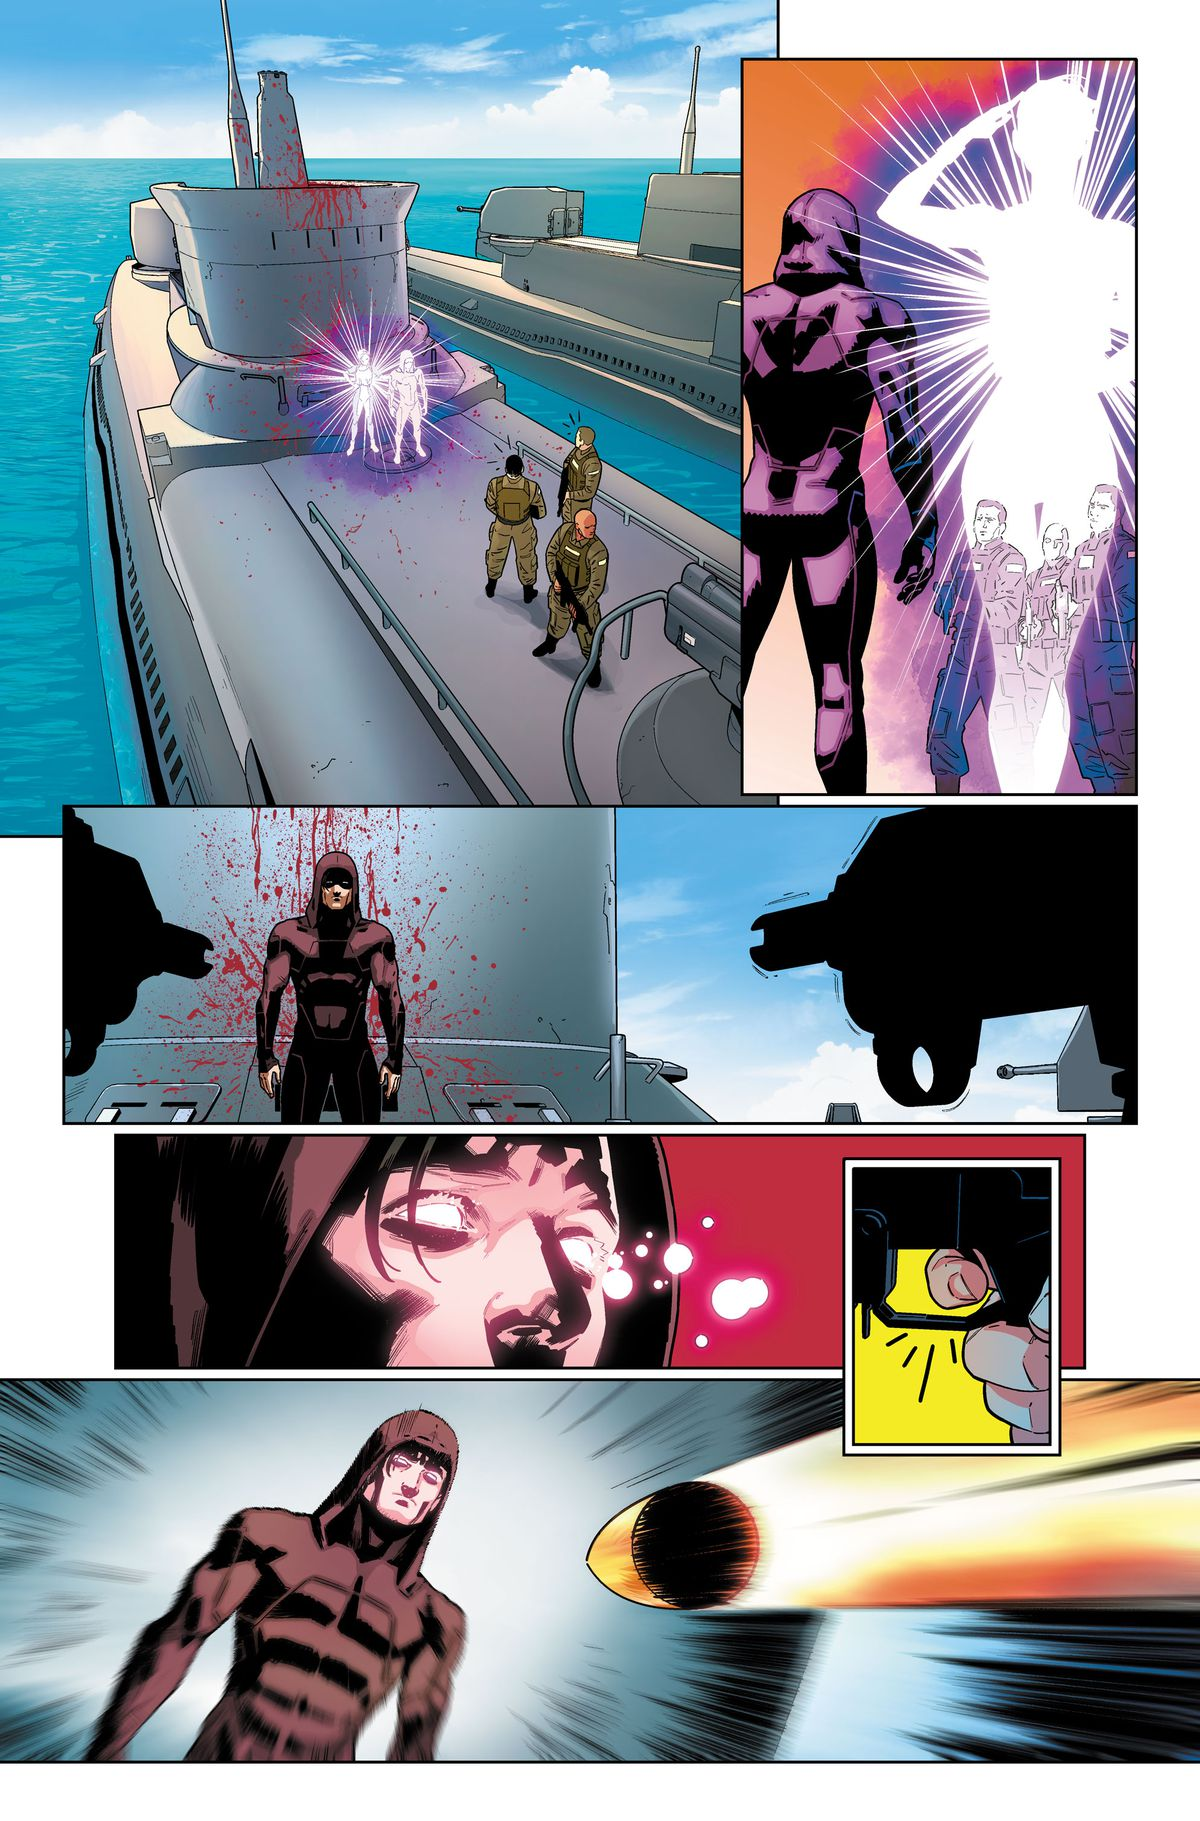 Blink teleports T.N.Teen to the deck of the submarine, and then teleports away. Navy soldiers fire a single bullet at T.N.Teen, in an unlettered page from Suicide Squad #1, DC Comics (2019).